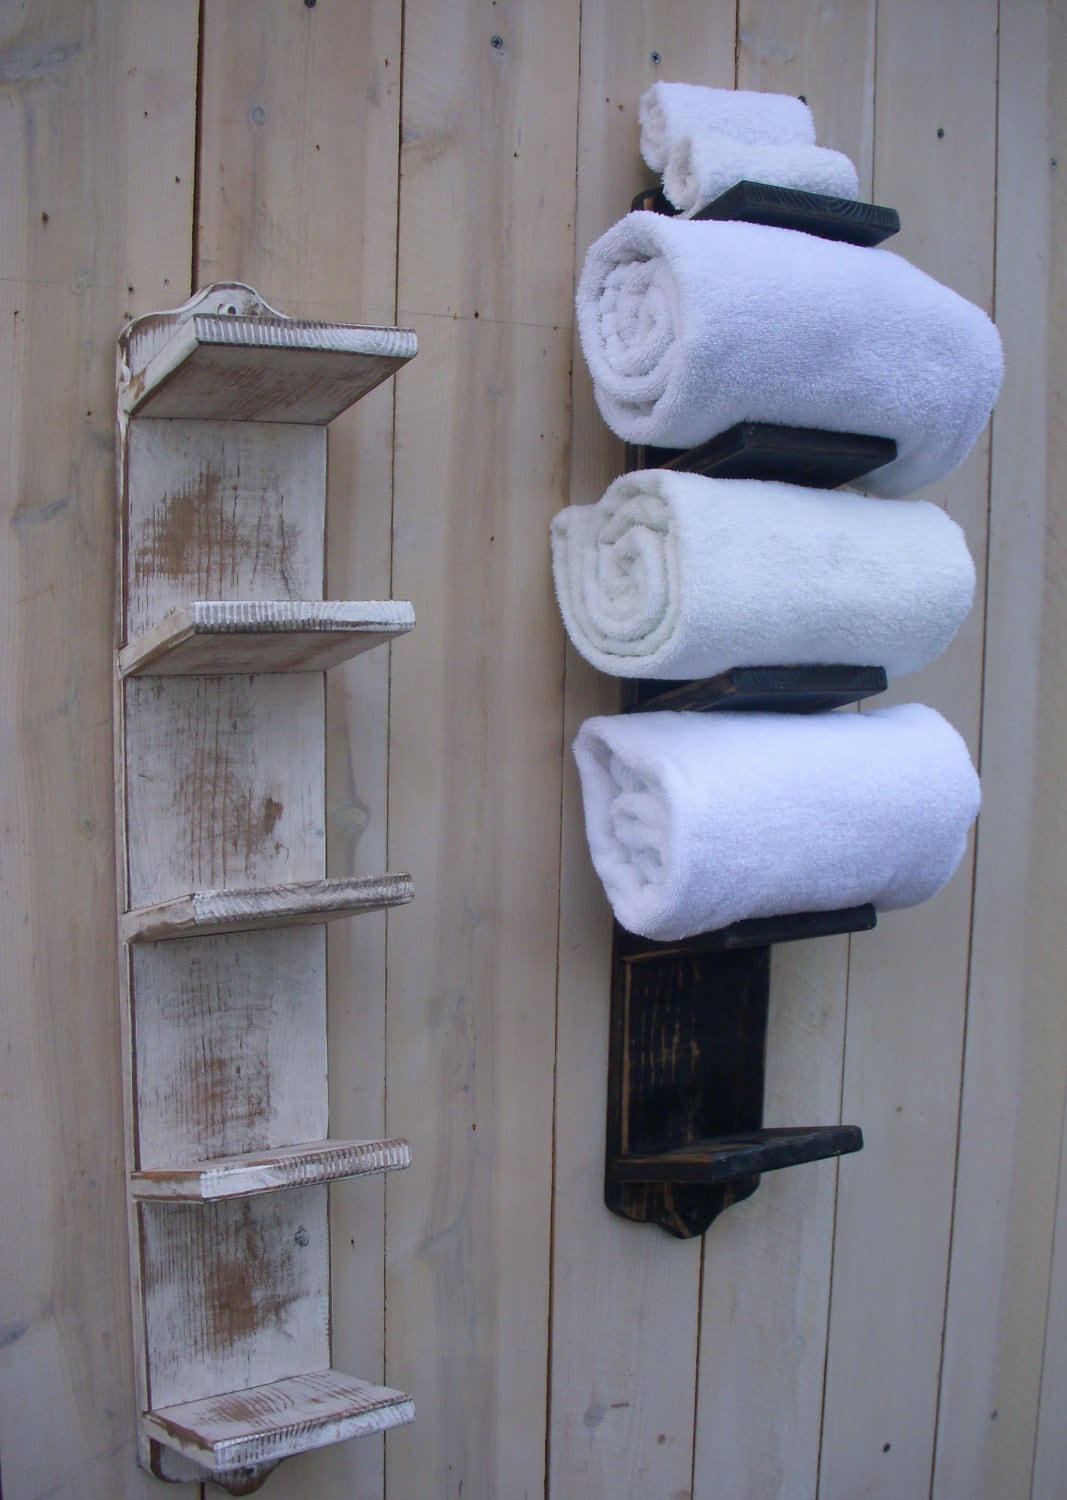 Decorative Bathroom Towel Storage : Handmade towel holder rack bath decor wood shabby